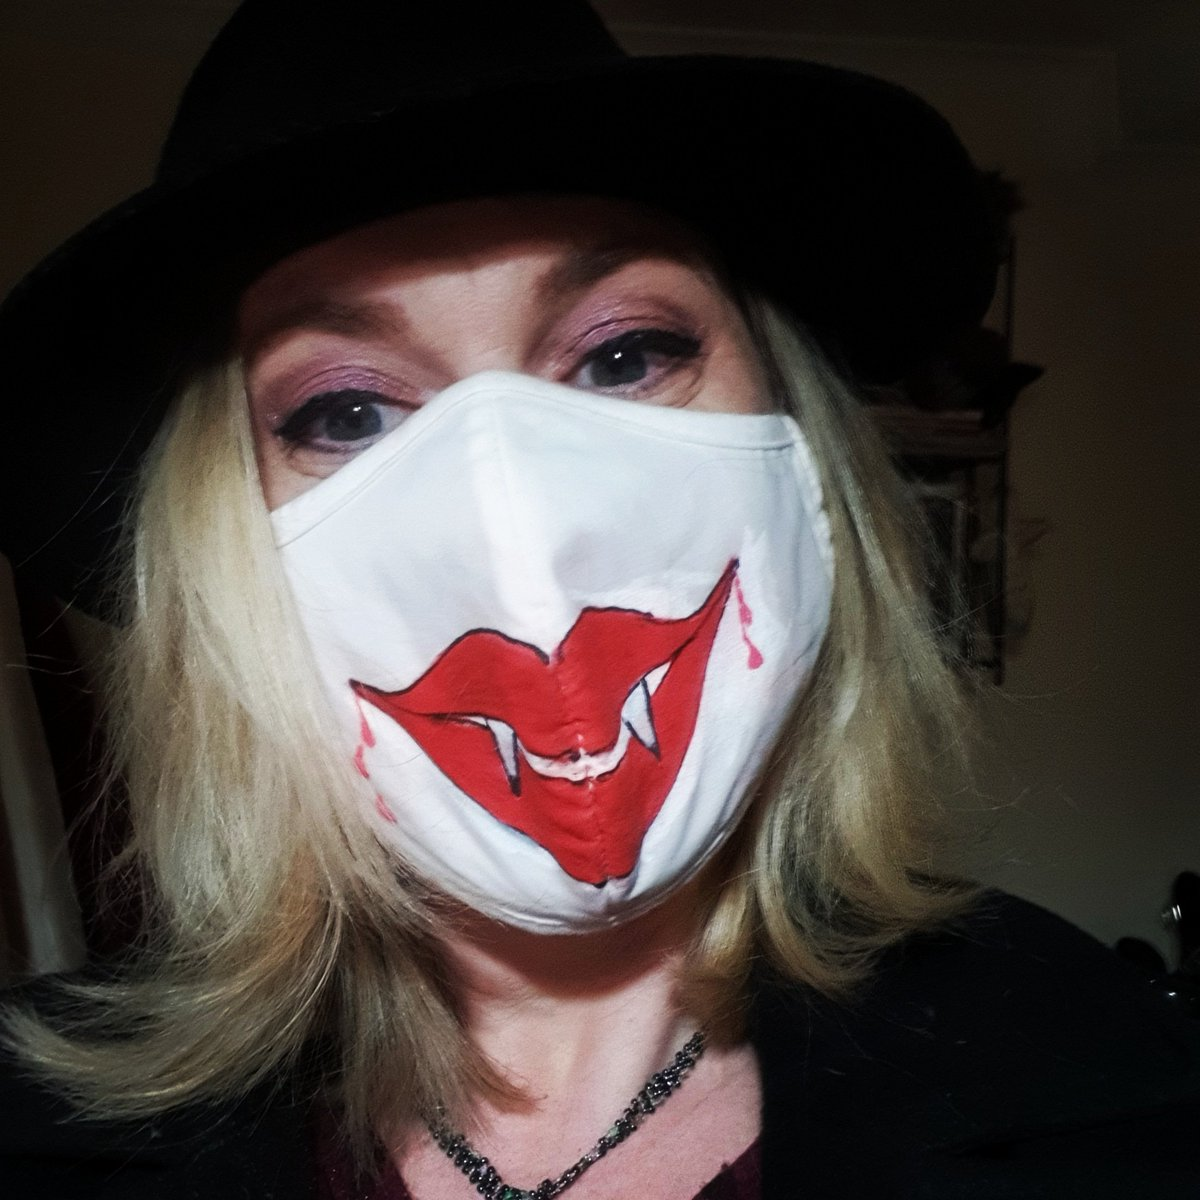 Putting the #fun into the pandemic! Todoay's #lockdownjoy and #pandemicpleasures is all about not hiding your #crazy, but shining it like a beacon into the world! #Facemasks are a fact of life now, so you might as well have fun with them #spreadsmiles #pandemicpositivity #selfie https://t.co/PcTKrWvx1S